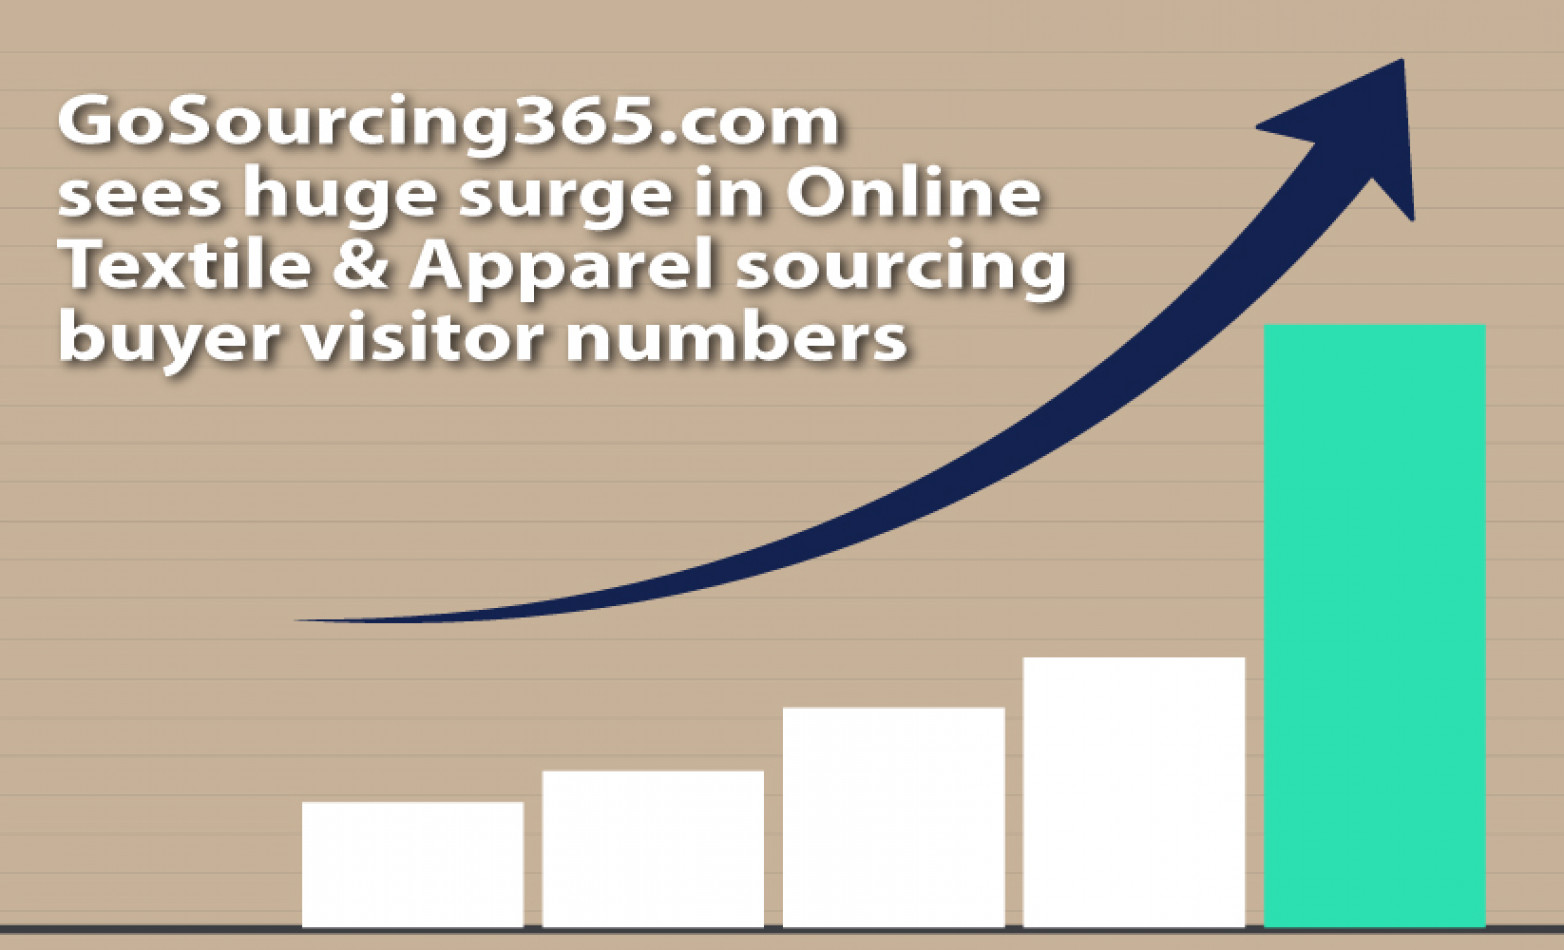 GoSourcing365.com sees huge surge in Online Textile & Apparel sourcing buyer visitor numbers